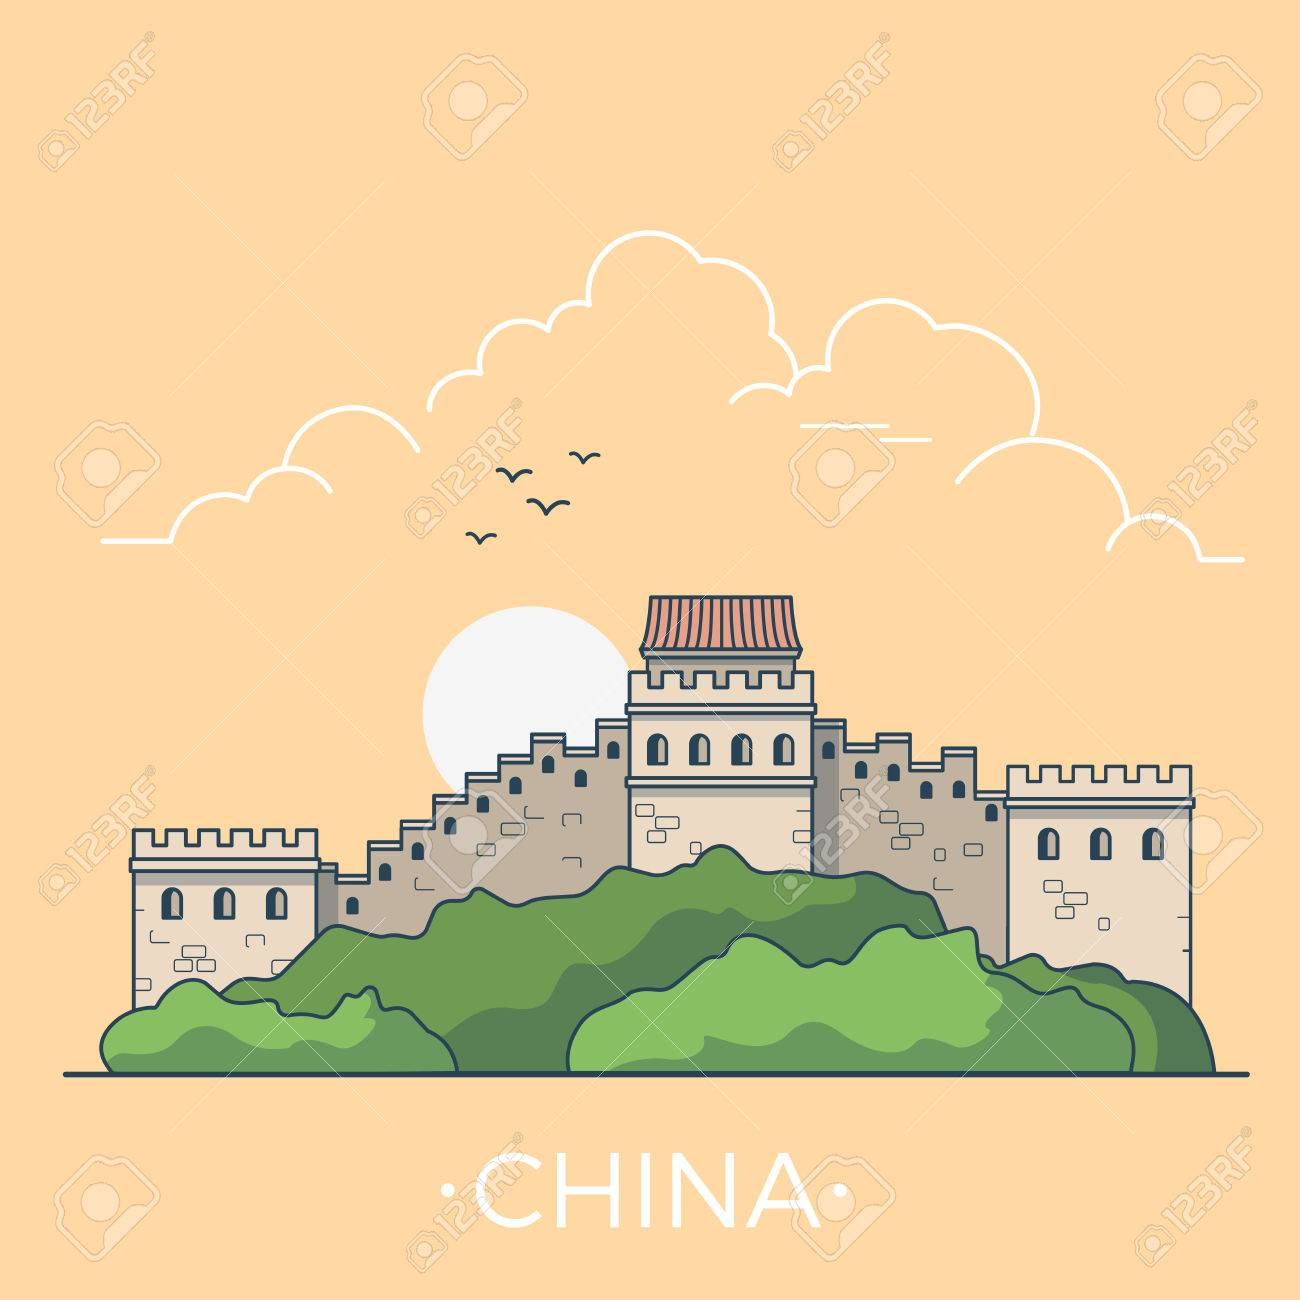 Funky Great Wall Of China Coloring Page Vignette - The Wall Art ...